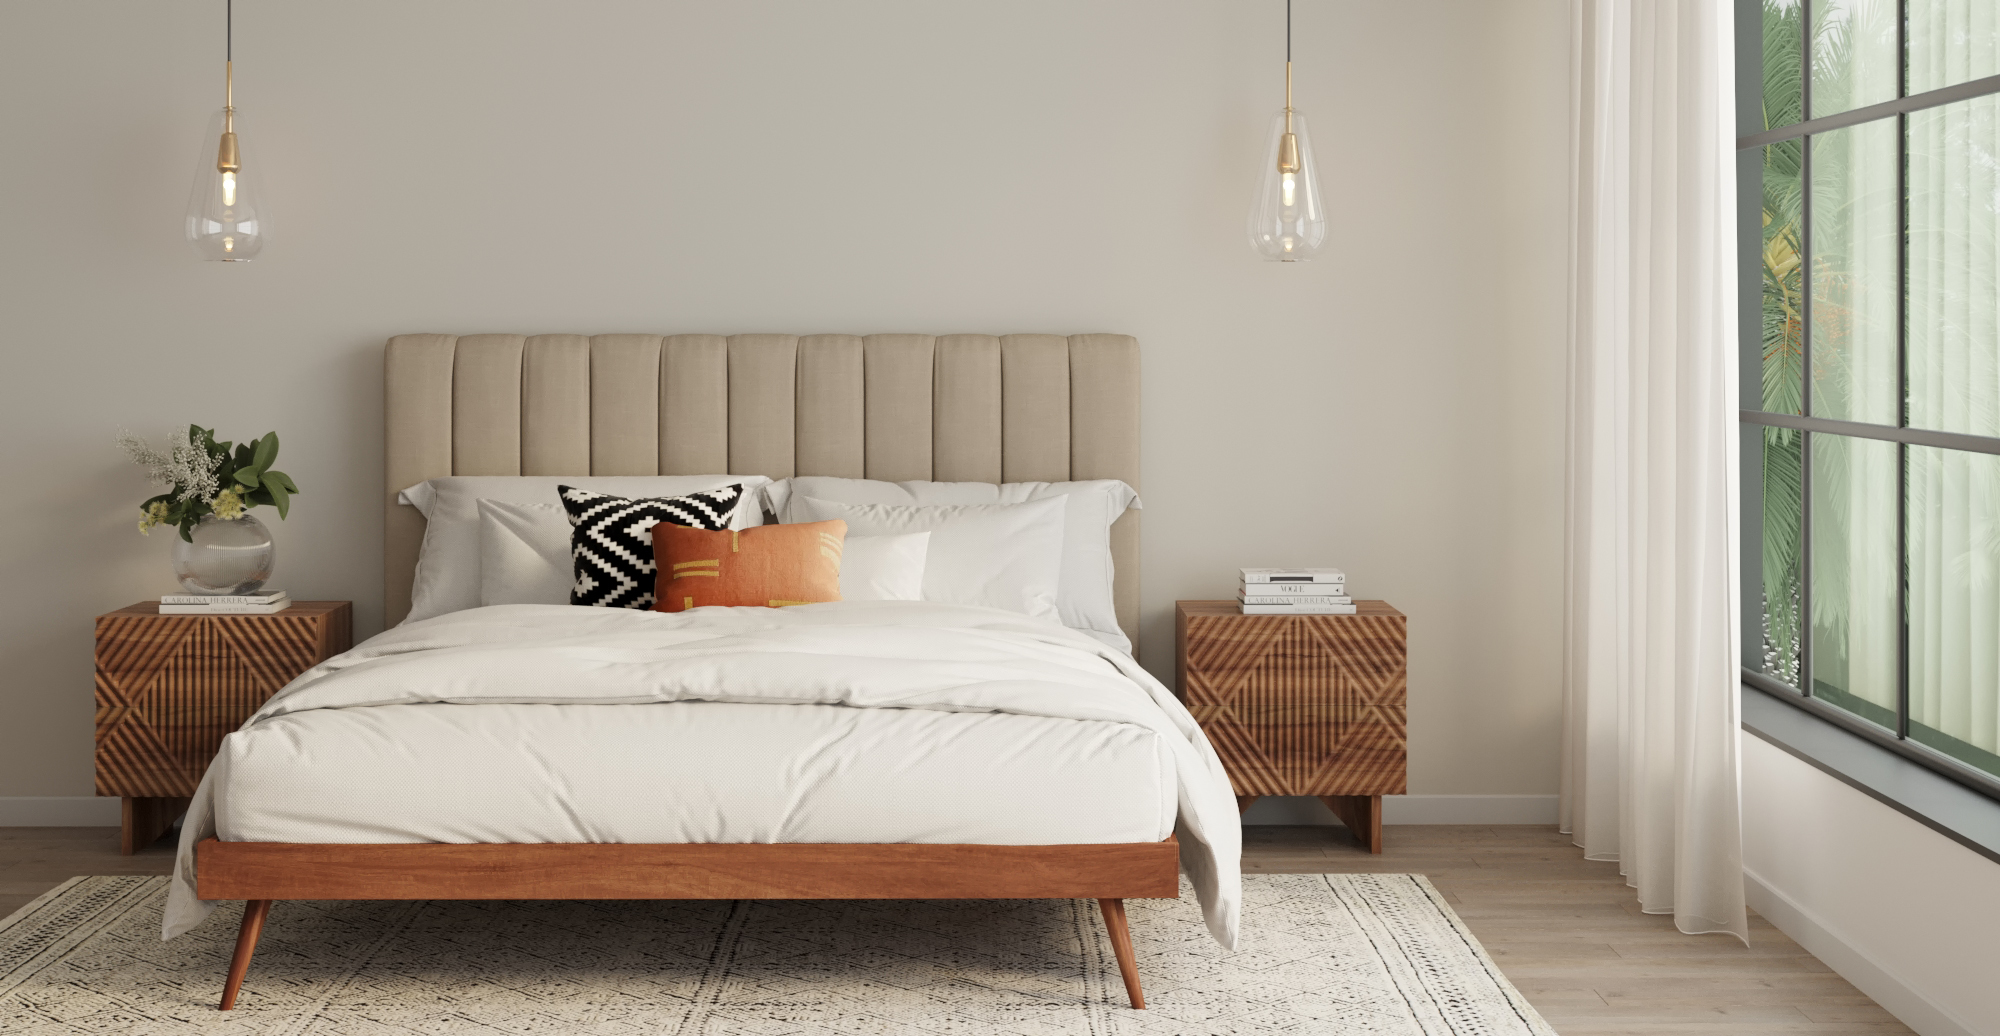 Brosa Megan and Frank Queen Size Bed Frame styled in mid century modern bedroom